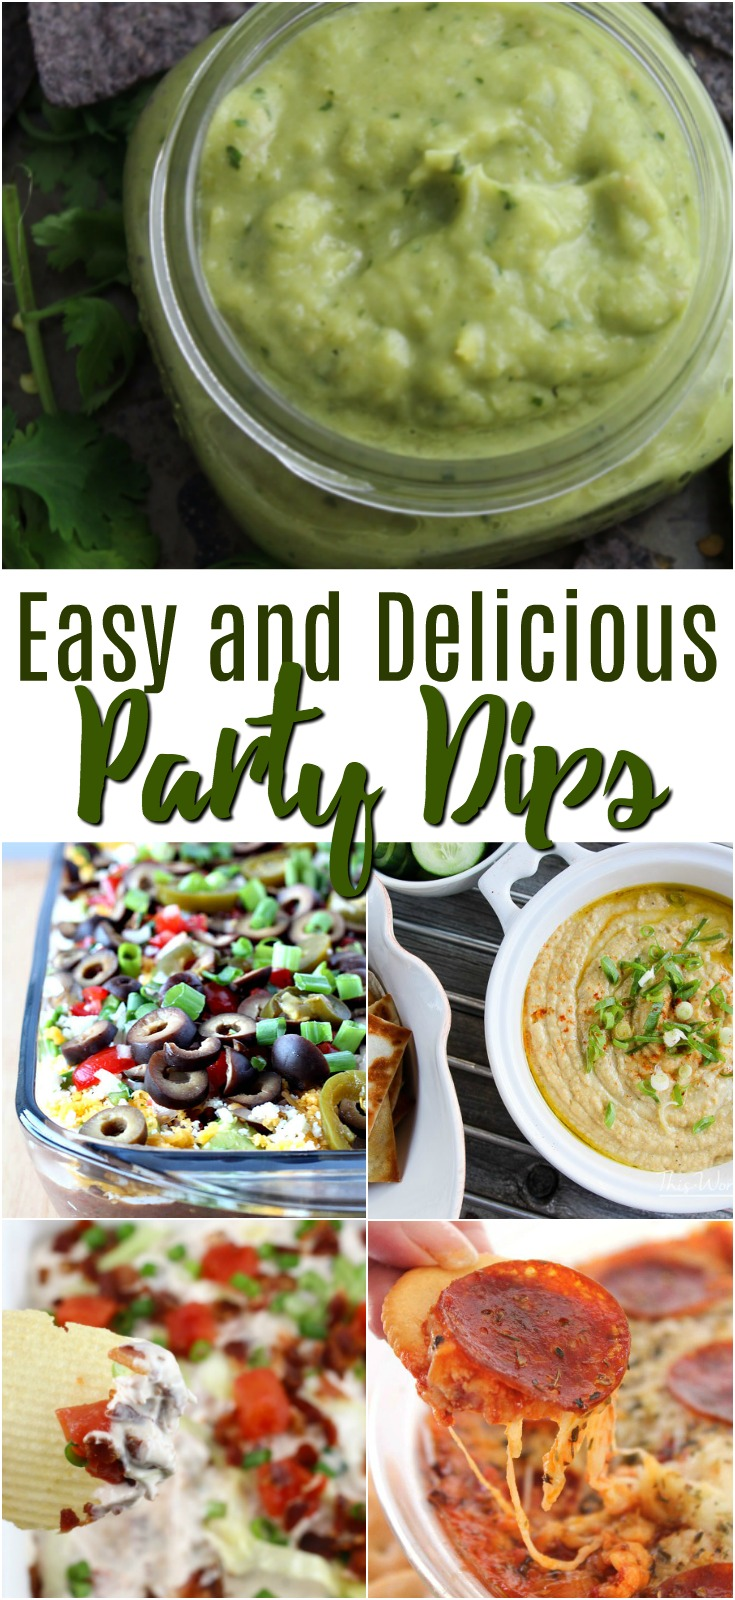 These easy party dips are perfect for your next get together!  #dip #appetizer #partydip